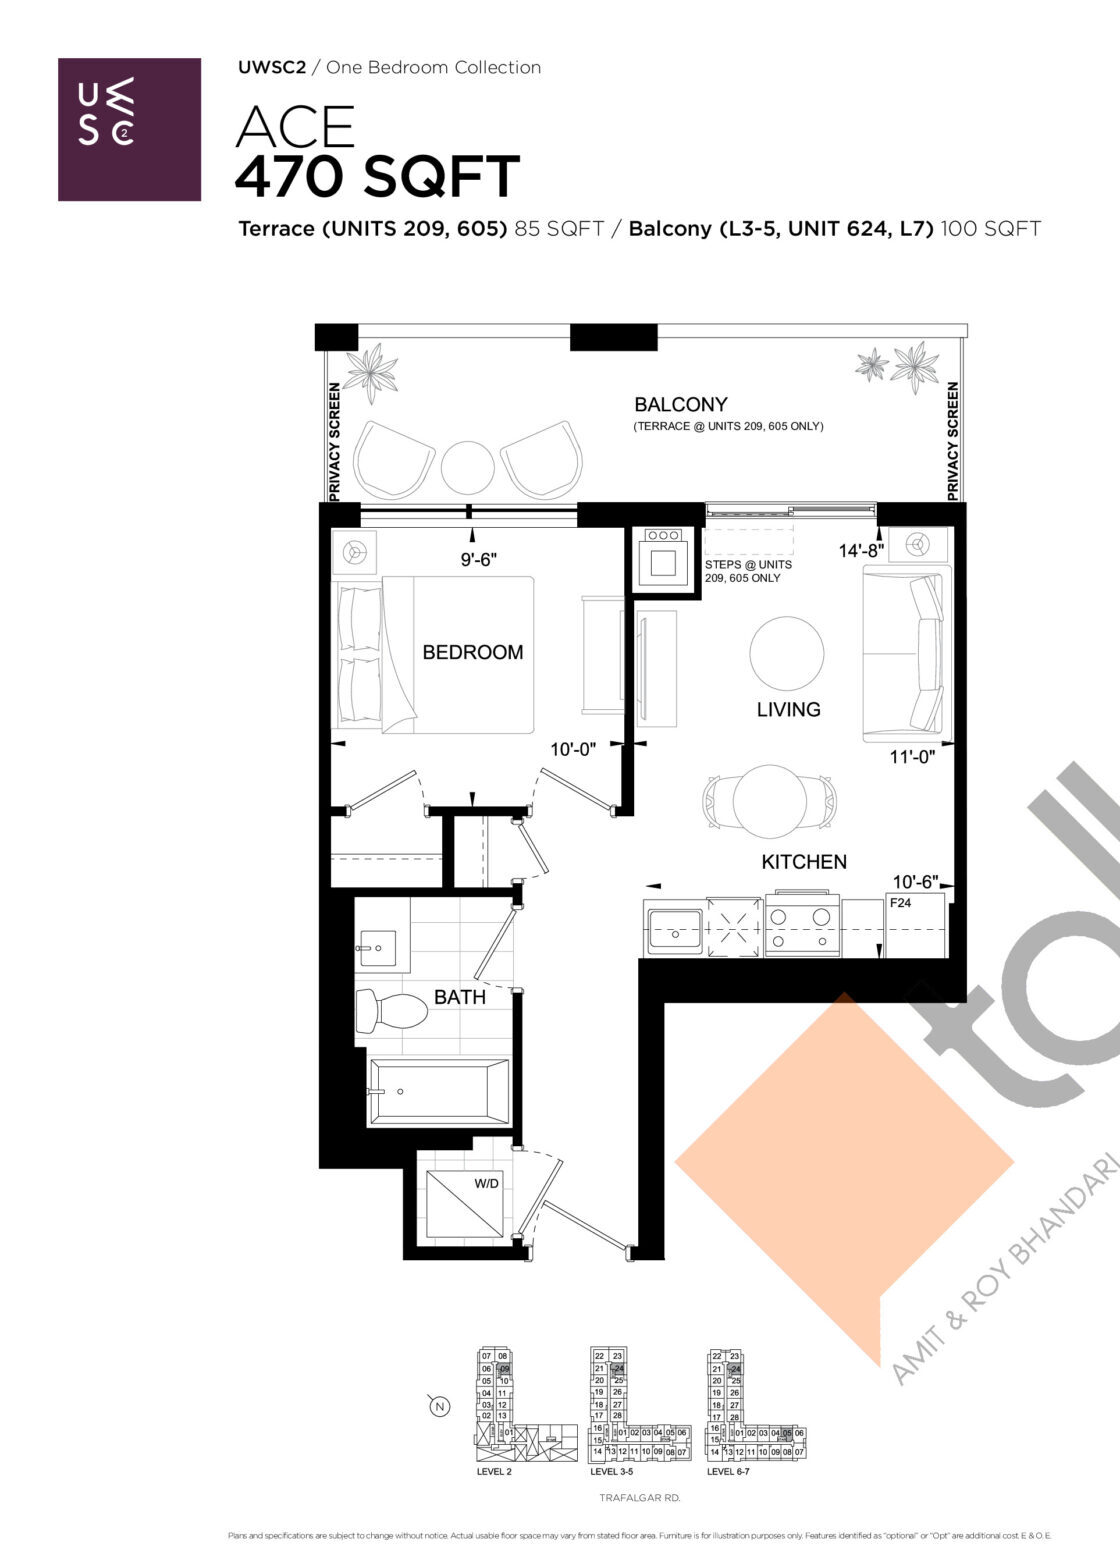 Ace Floor Plan at Upper West Side Condos 2 - 470 sq.ft